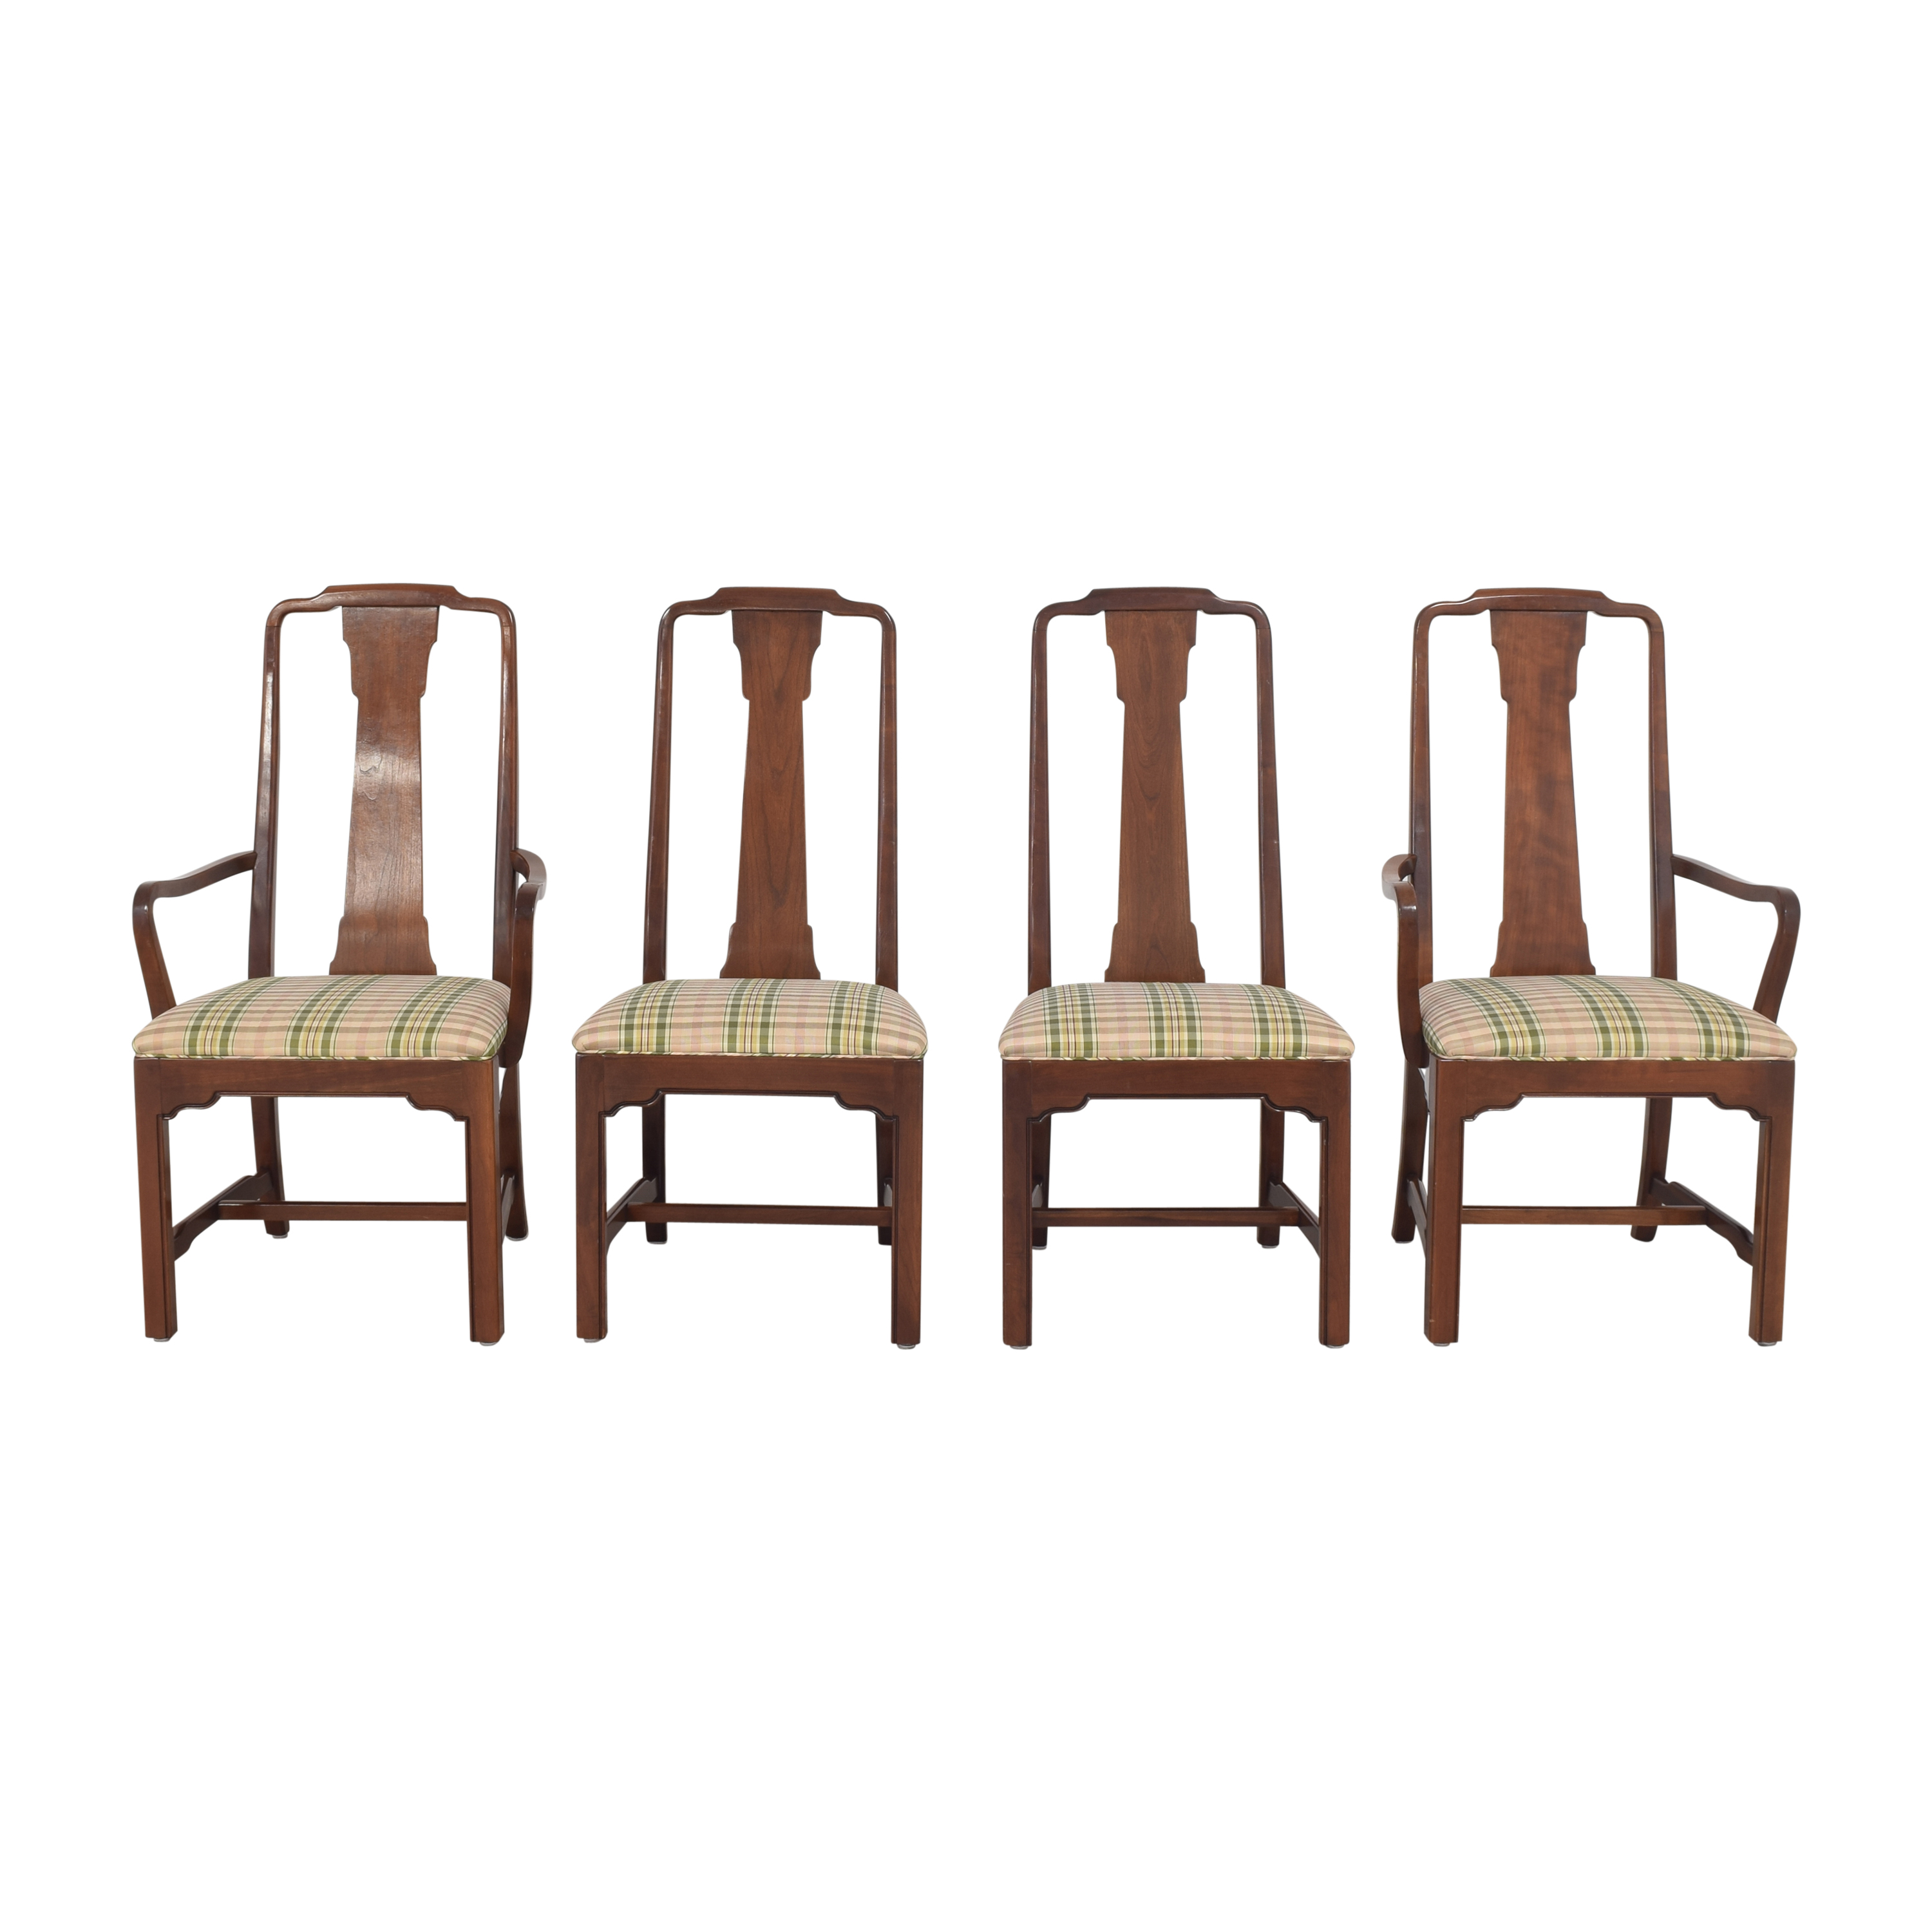 Ethan Allen Ethan Allen Canova Campaign Dining Chairs